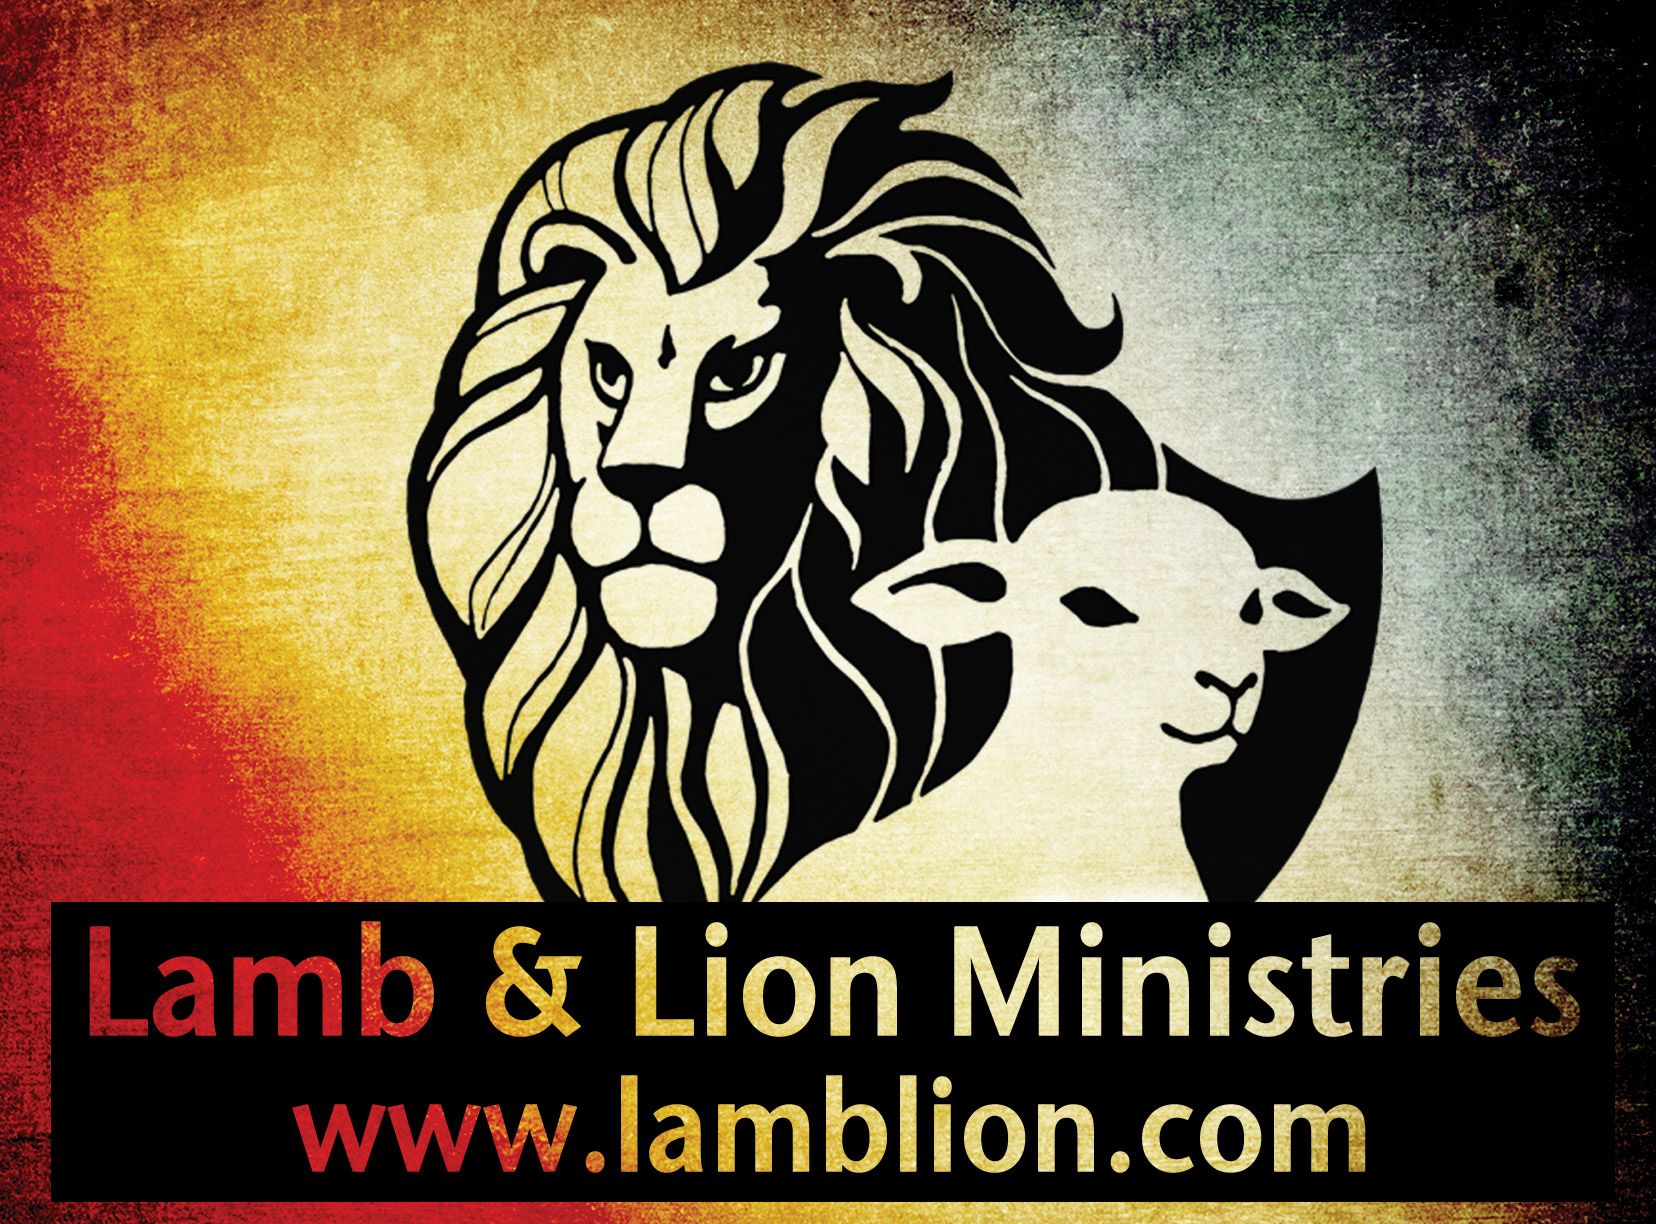 press resources bible prophecy lamb and lion ministries